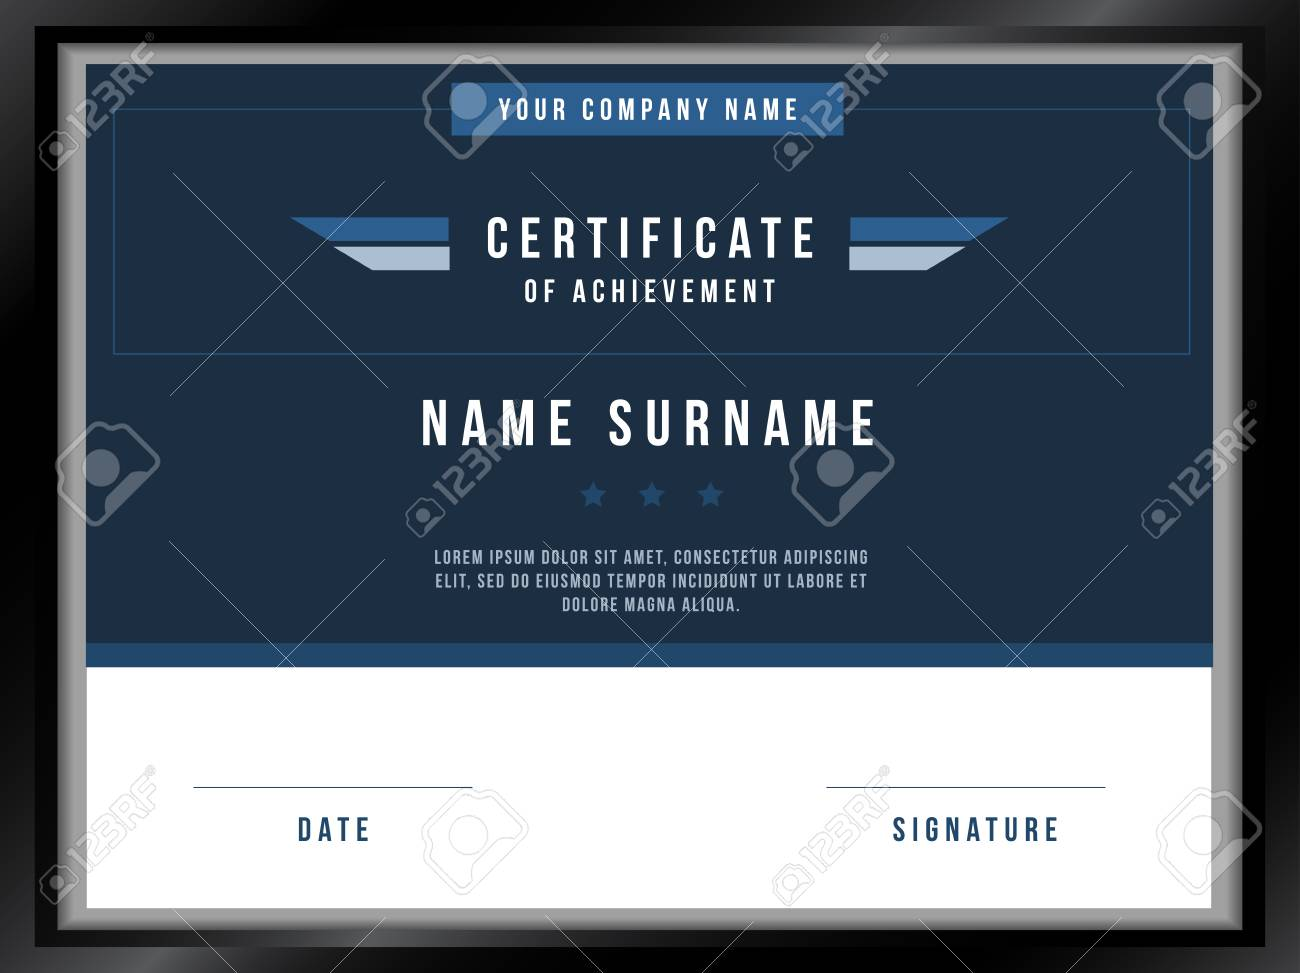 Vector Certificate Template With Premium Minimal Design Royalty Free - Electronic stock certificate template